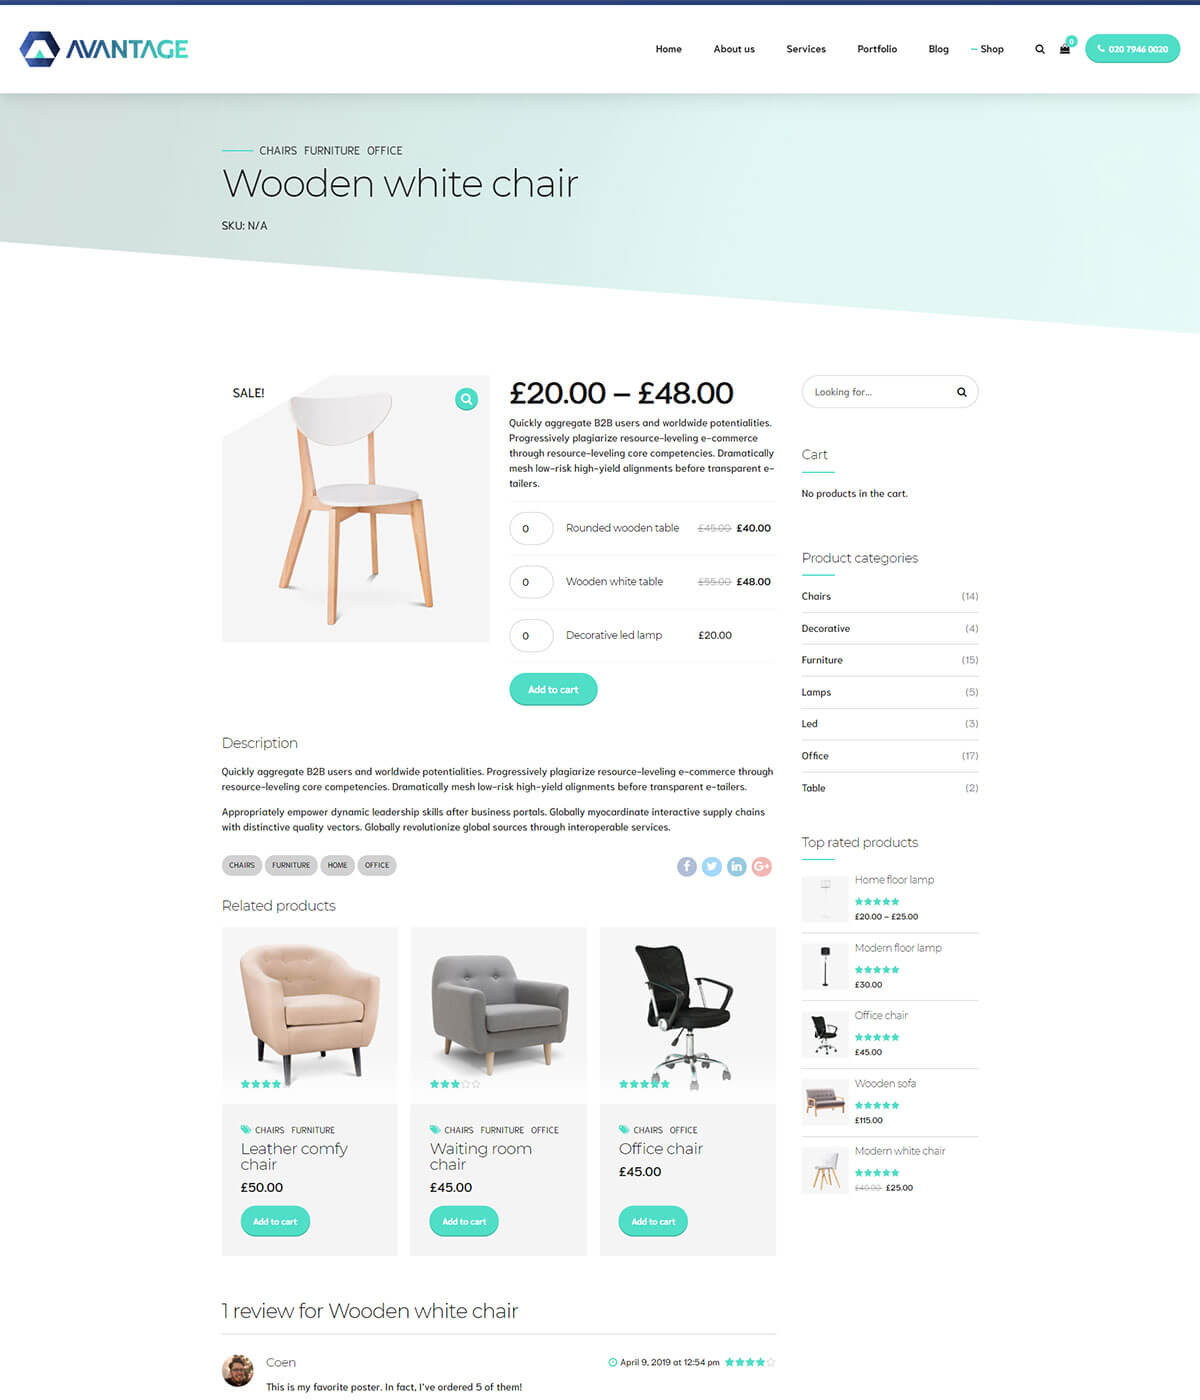 http://avantage.bold-themes.com/wp-content/uploads/2019/05/accountant-15-product.jpg